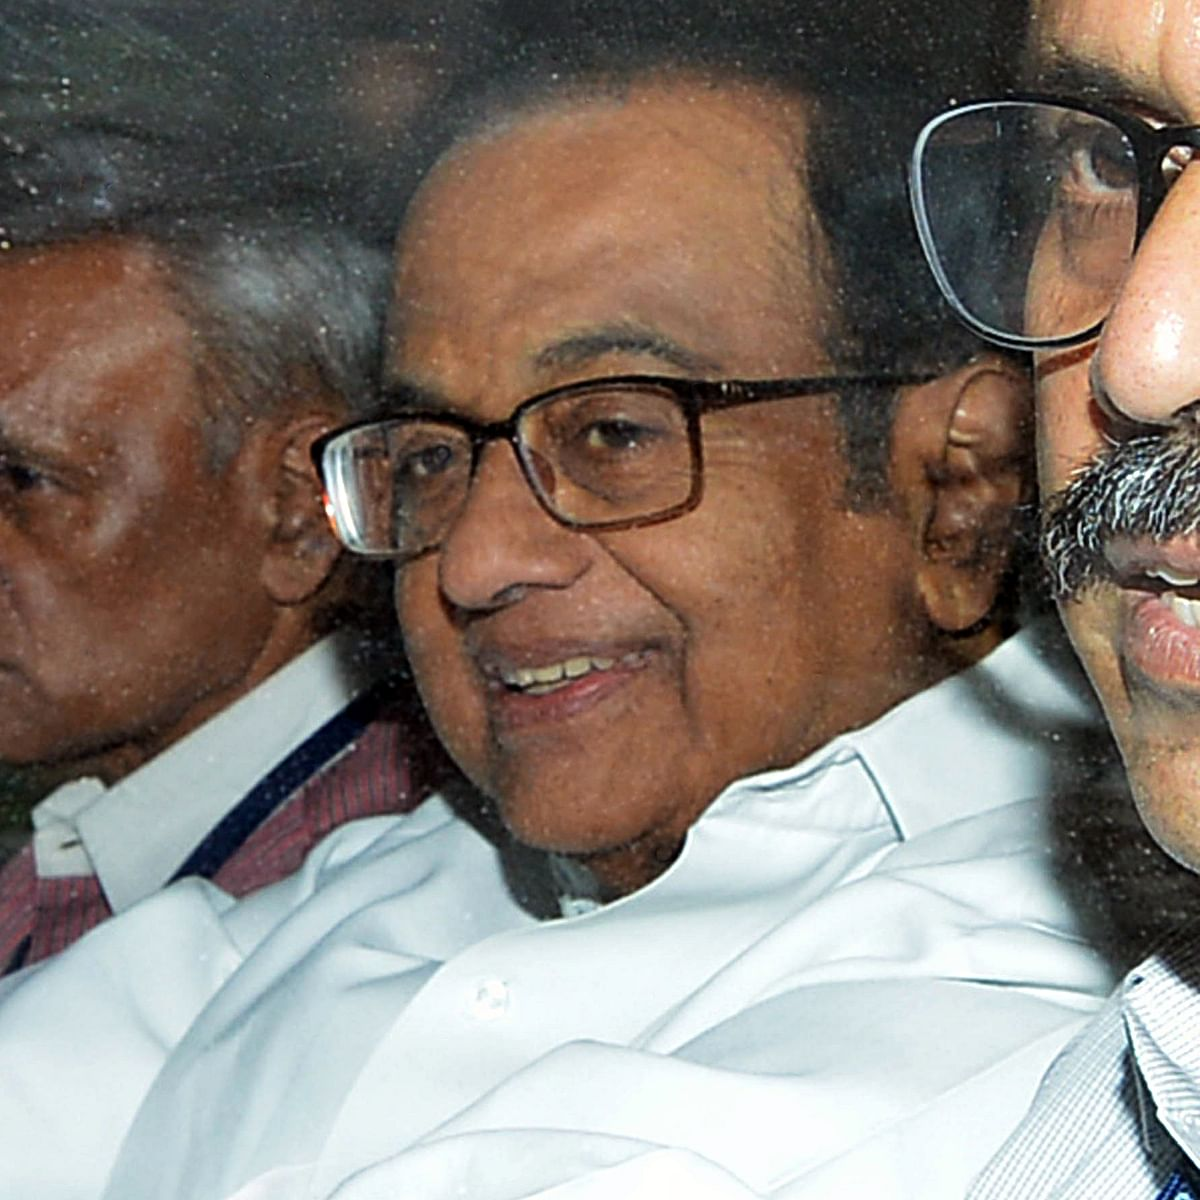 INX Media scam: CBI gets further four days custody of Chidambaram by Delhi Court